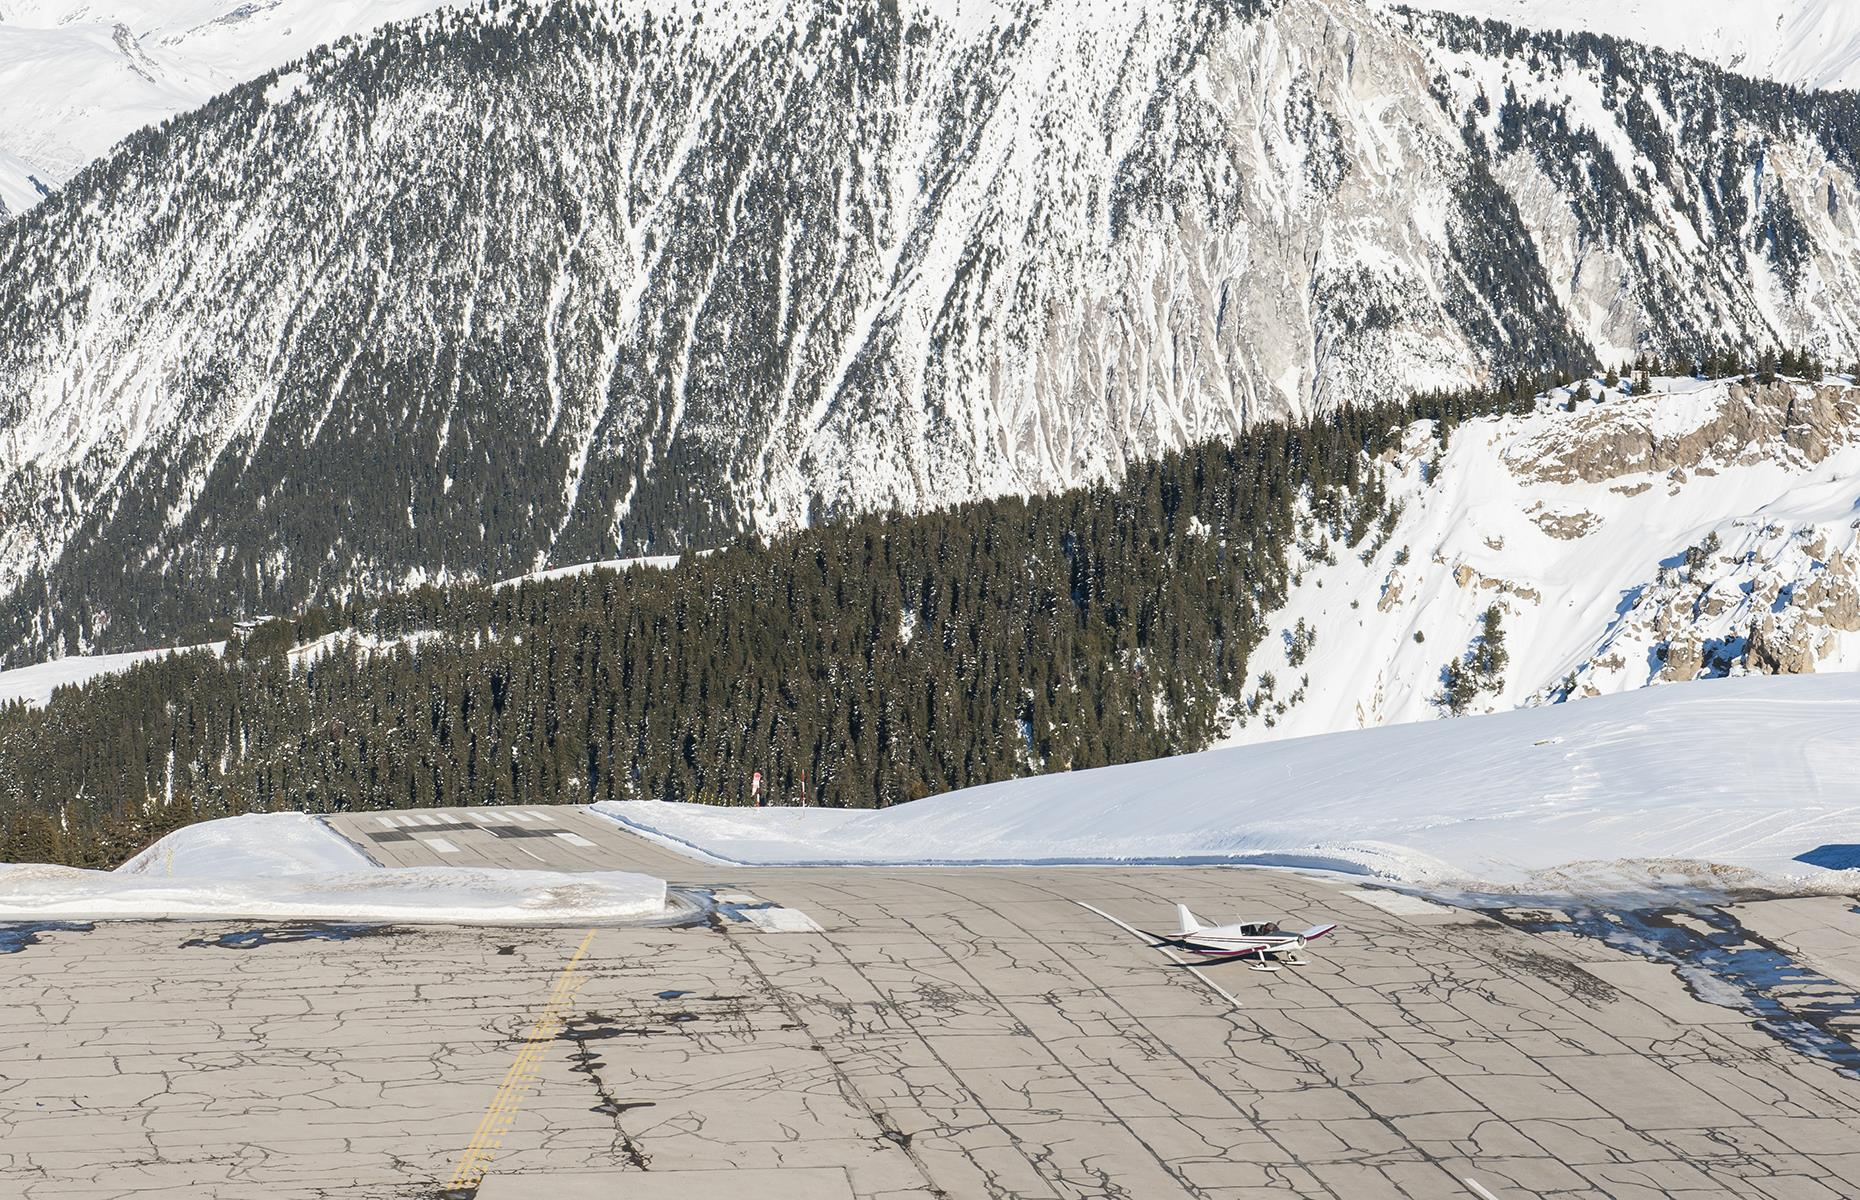 Slide 3 of 31: The runway is sloped upwards to a gradient of 18.66%–the highest gradient in the world no less– and, owing to its proximity to the ski resort and passing skiers, it's probably just as scary being on the ground as in the plane.